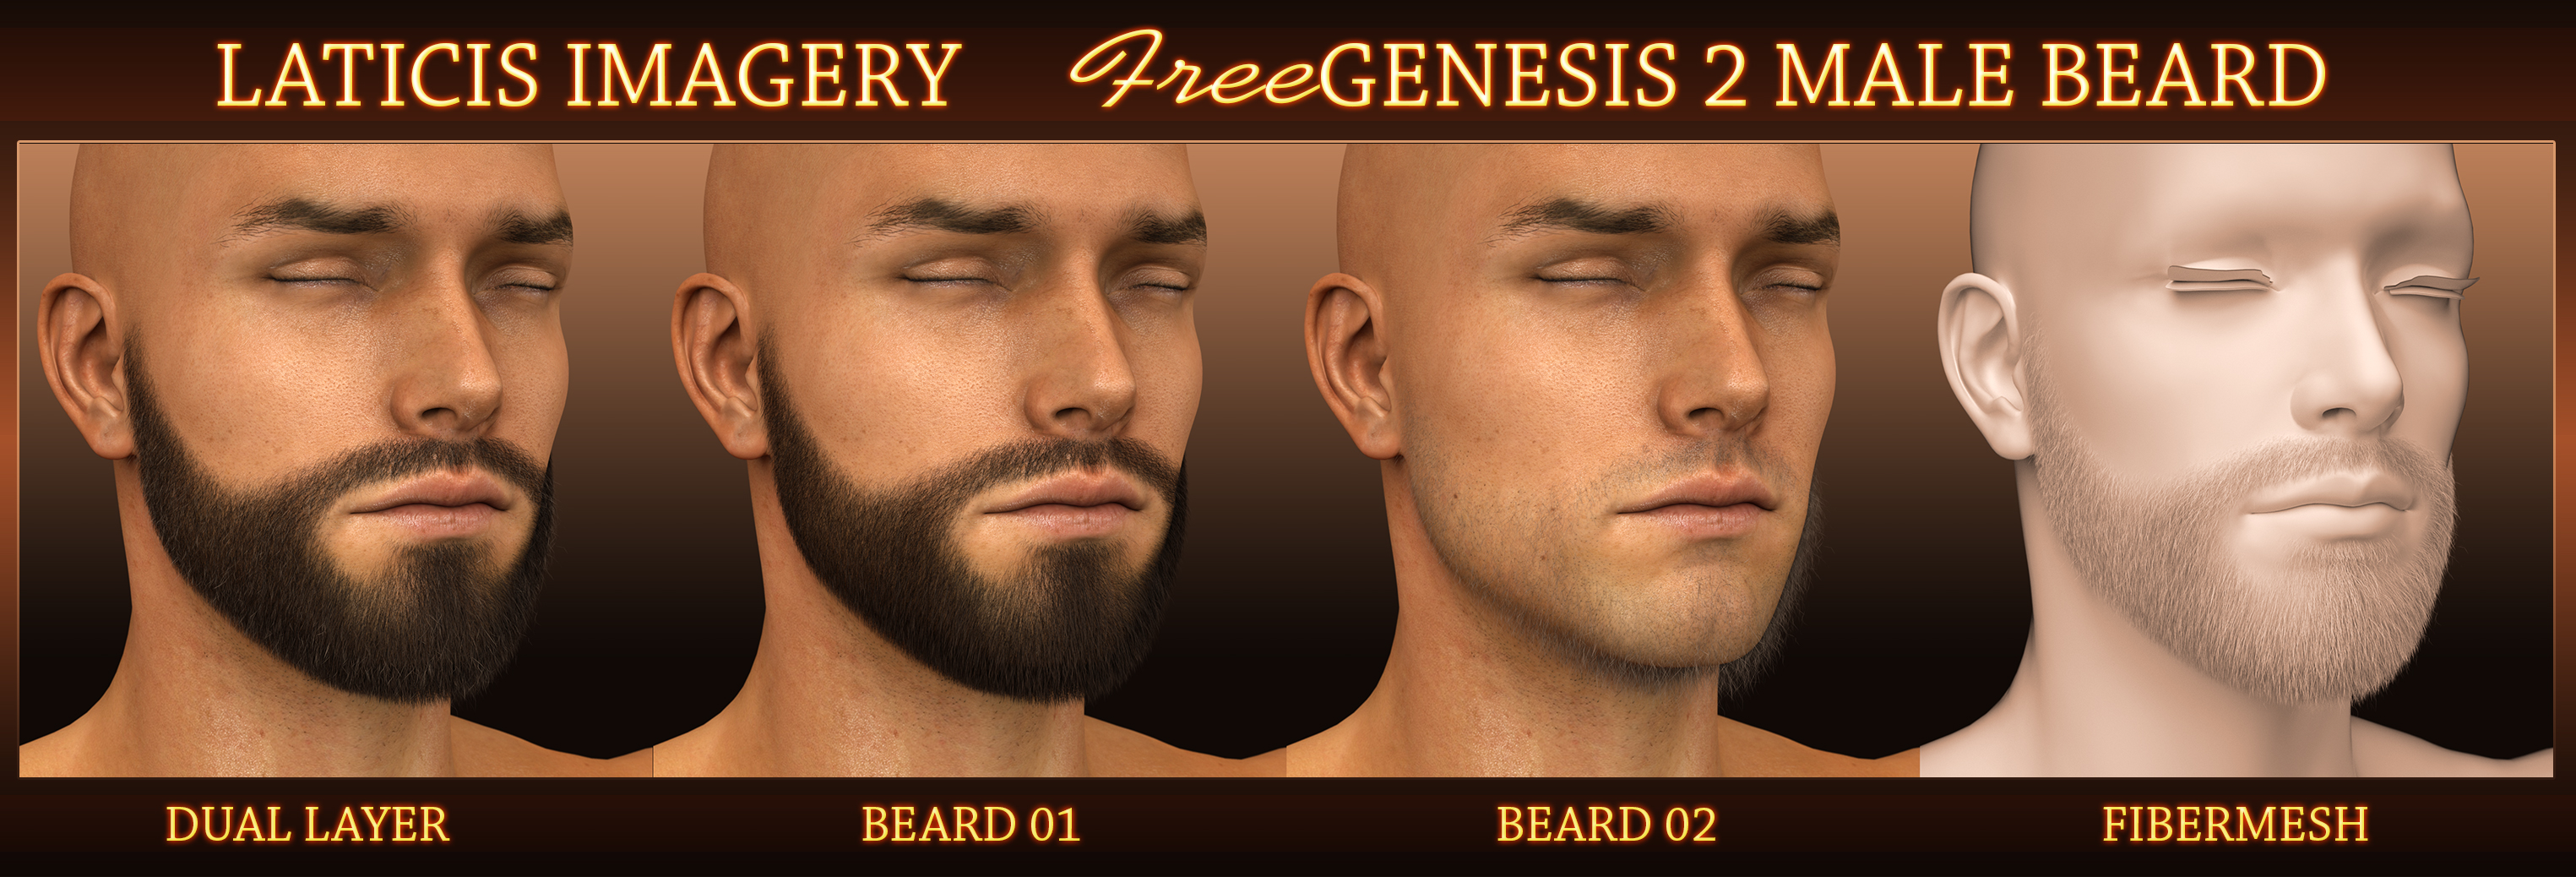 Laticis Imagery FREE - Genesis 2 Male Beard by Laticis on